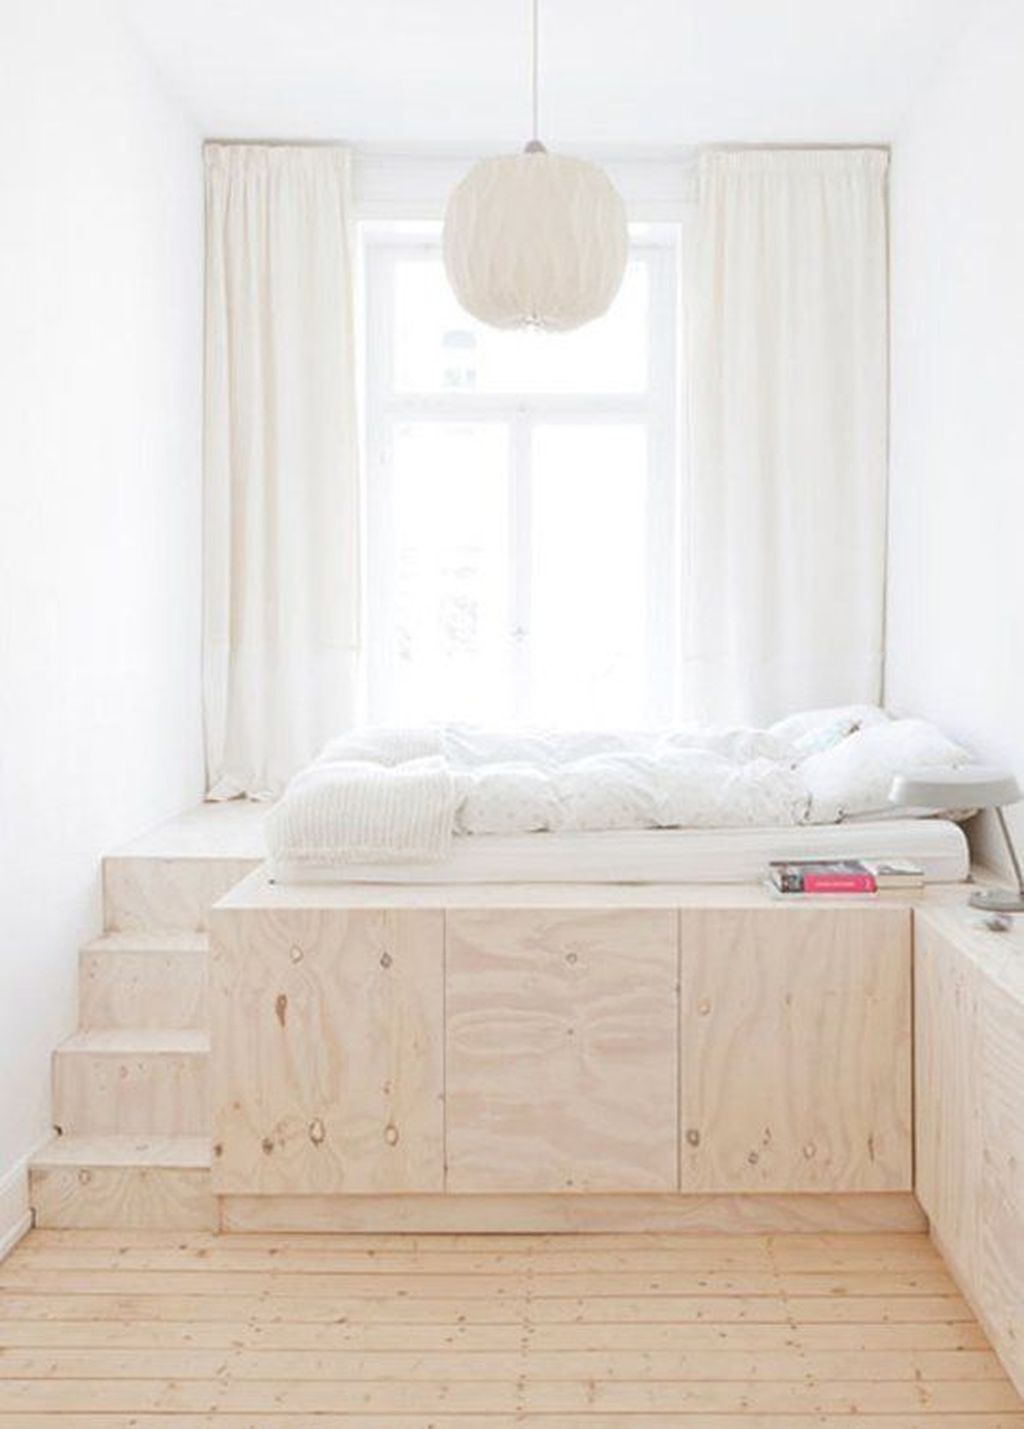 Genius Space Saving Hacks For Your Tiny House 11